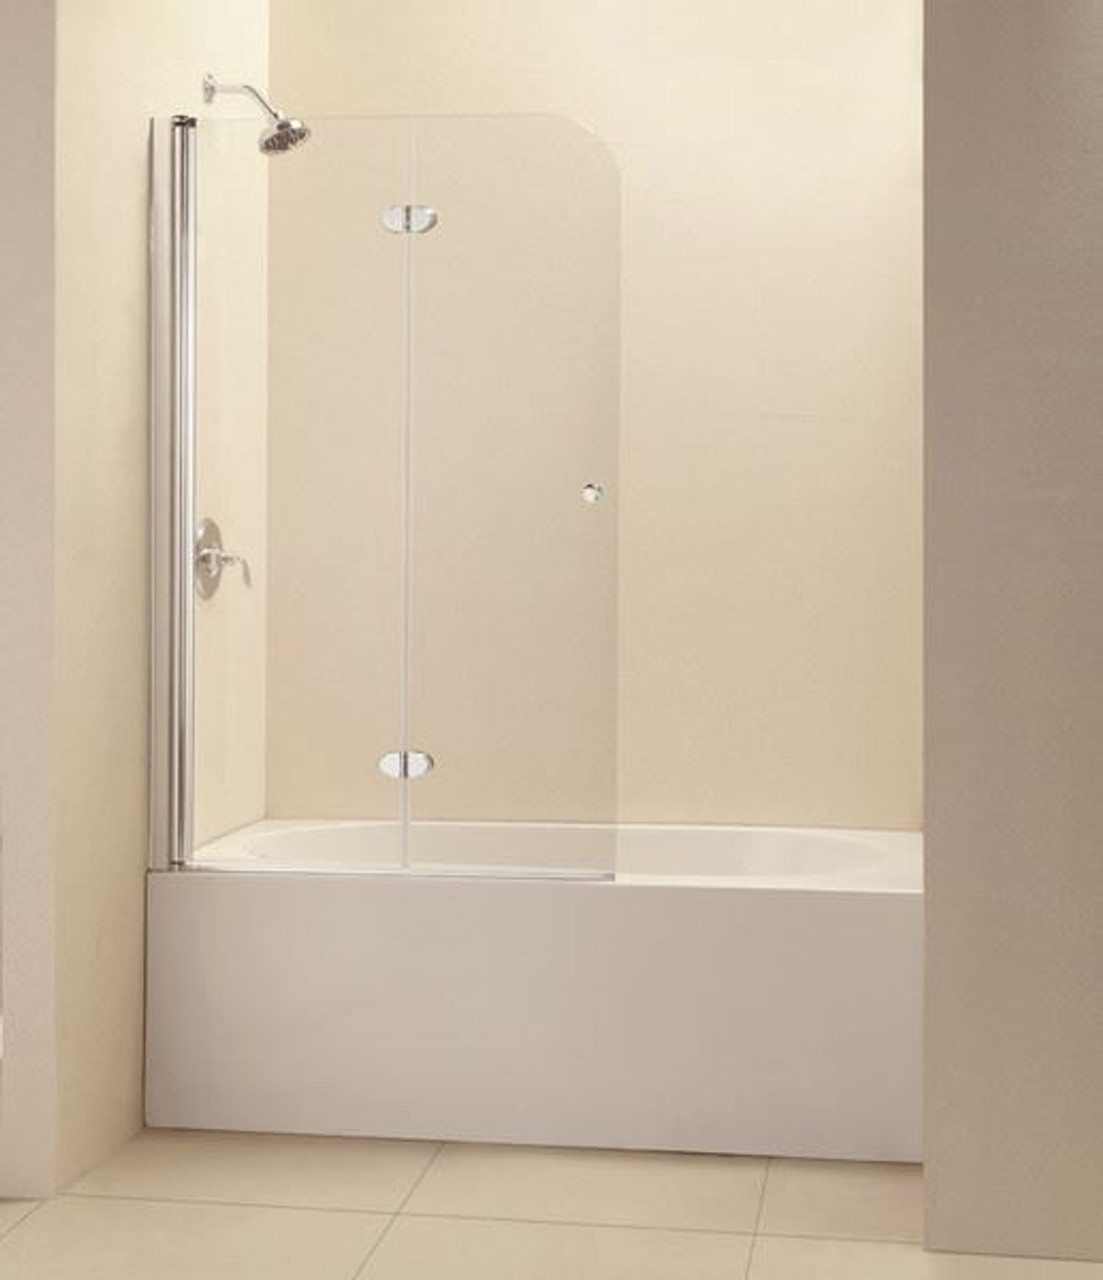 Bifold Glass Bathtub Doors Frameless Aqua Fold